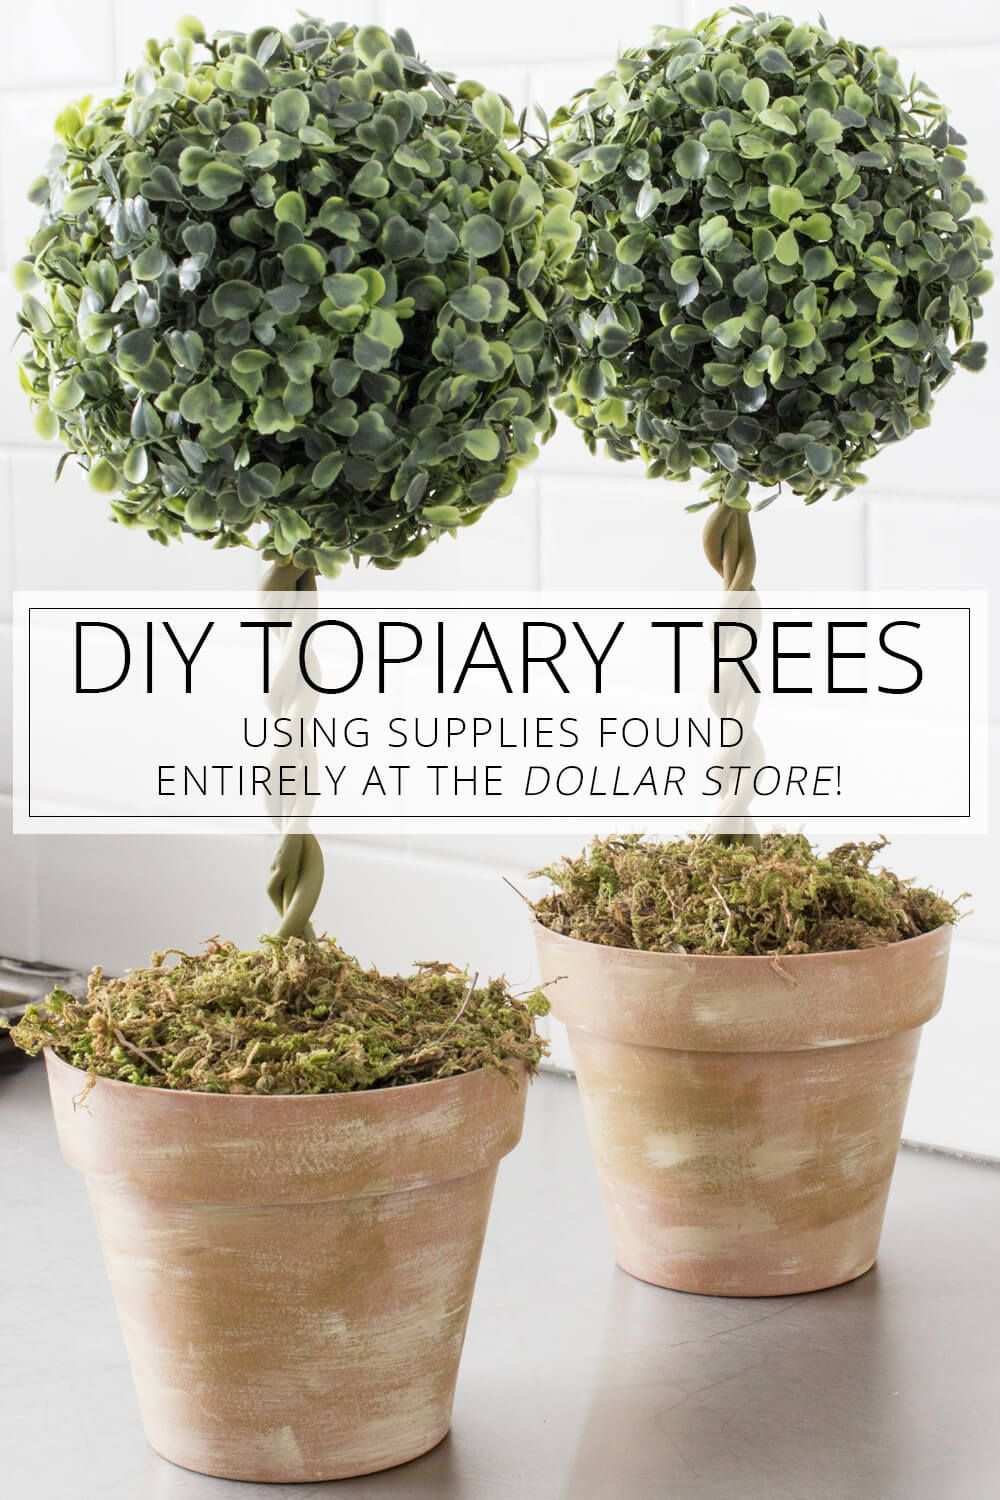 33 Impressive Diy Dollar Store Home Decor Ideas For Designers On A Budget Dollar Store Decor Topiary Trees Diy Home Decor Projects